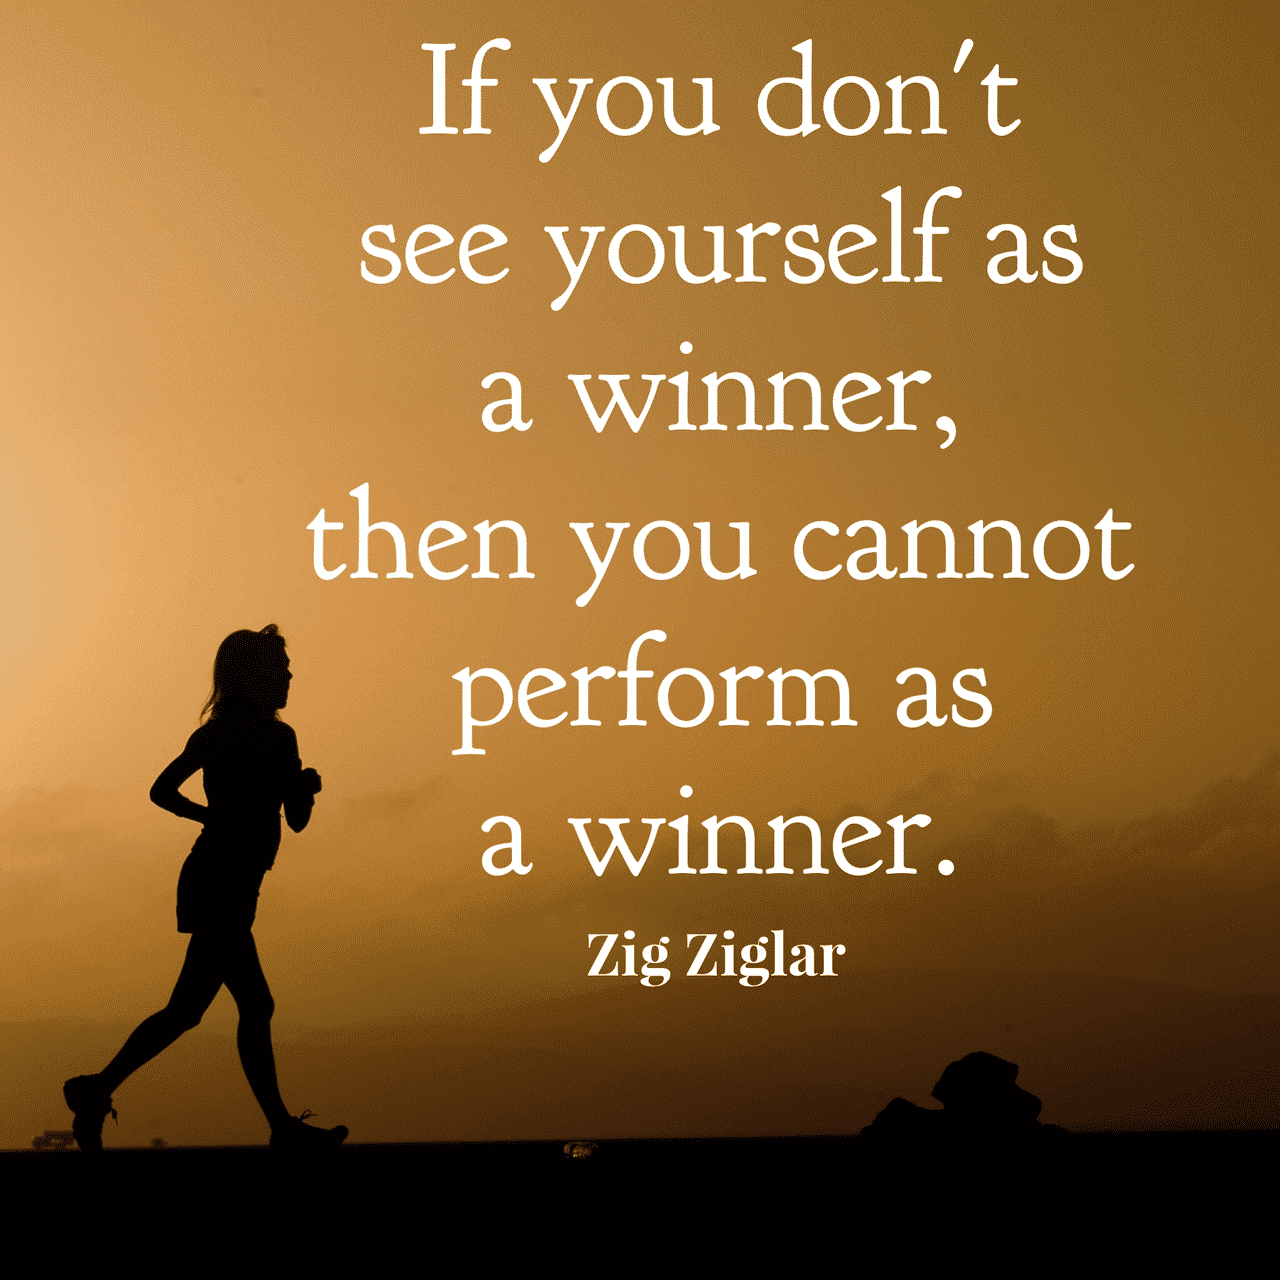 Quotes Zig Ziglar Gorgeous 25 Motivational Zig Ziglar Quotes